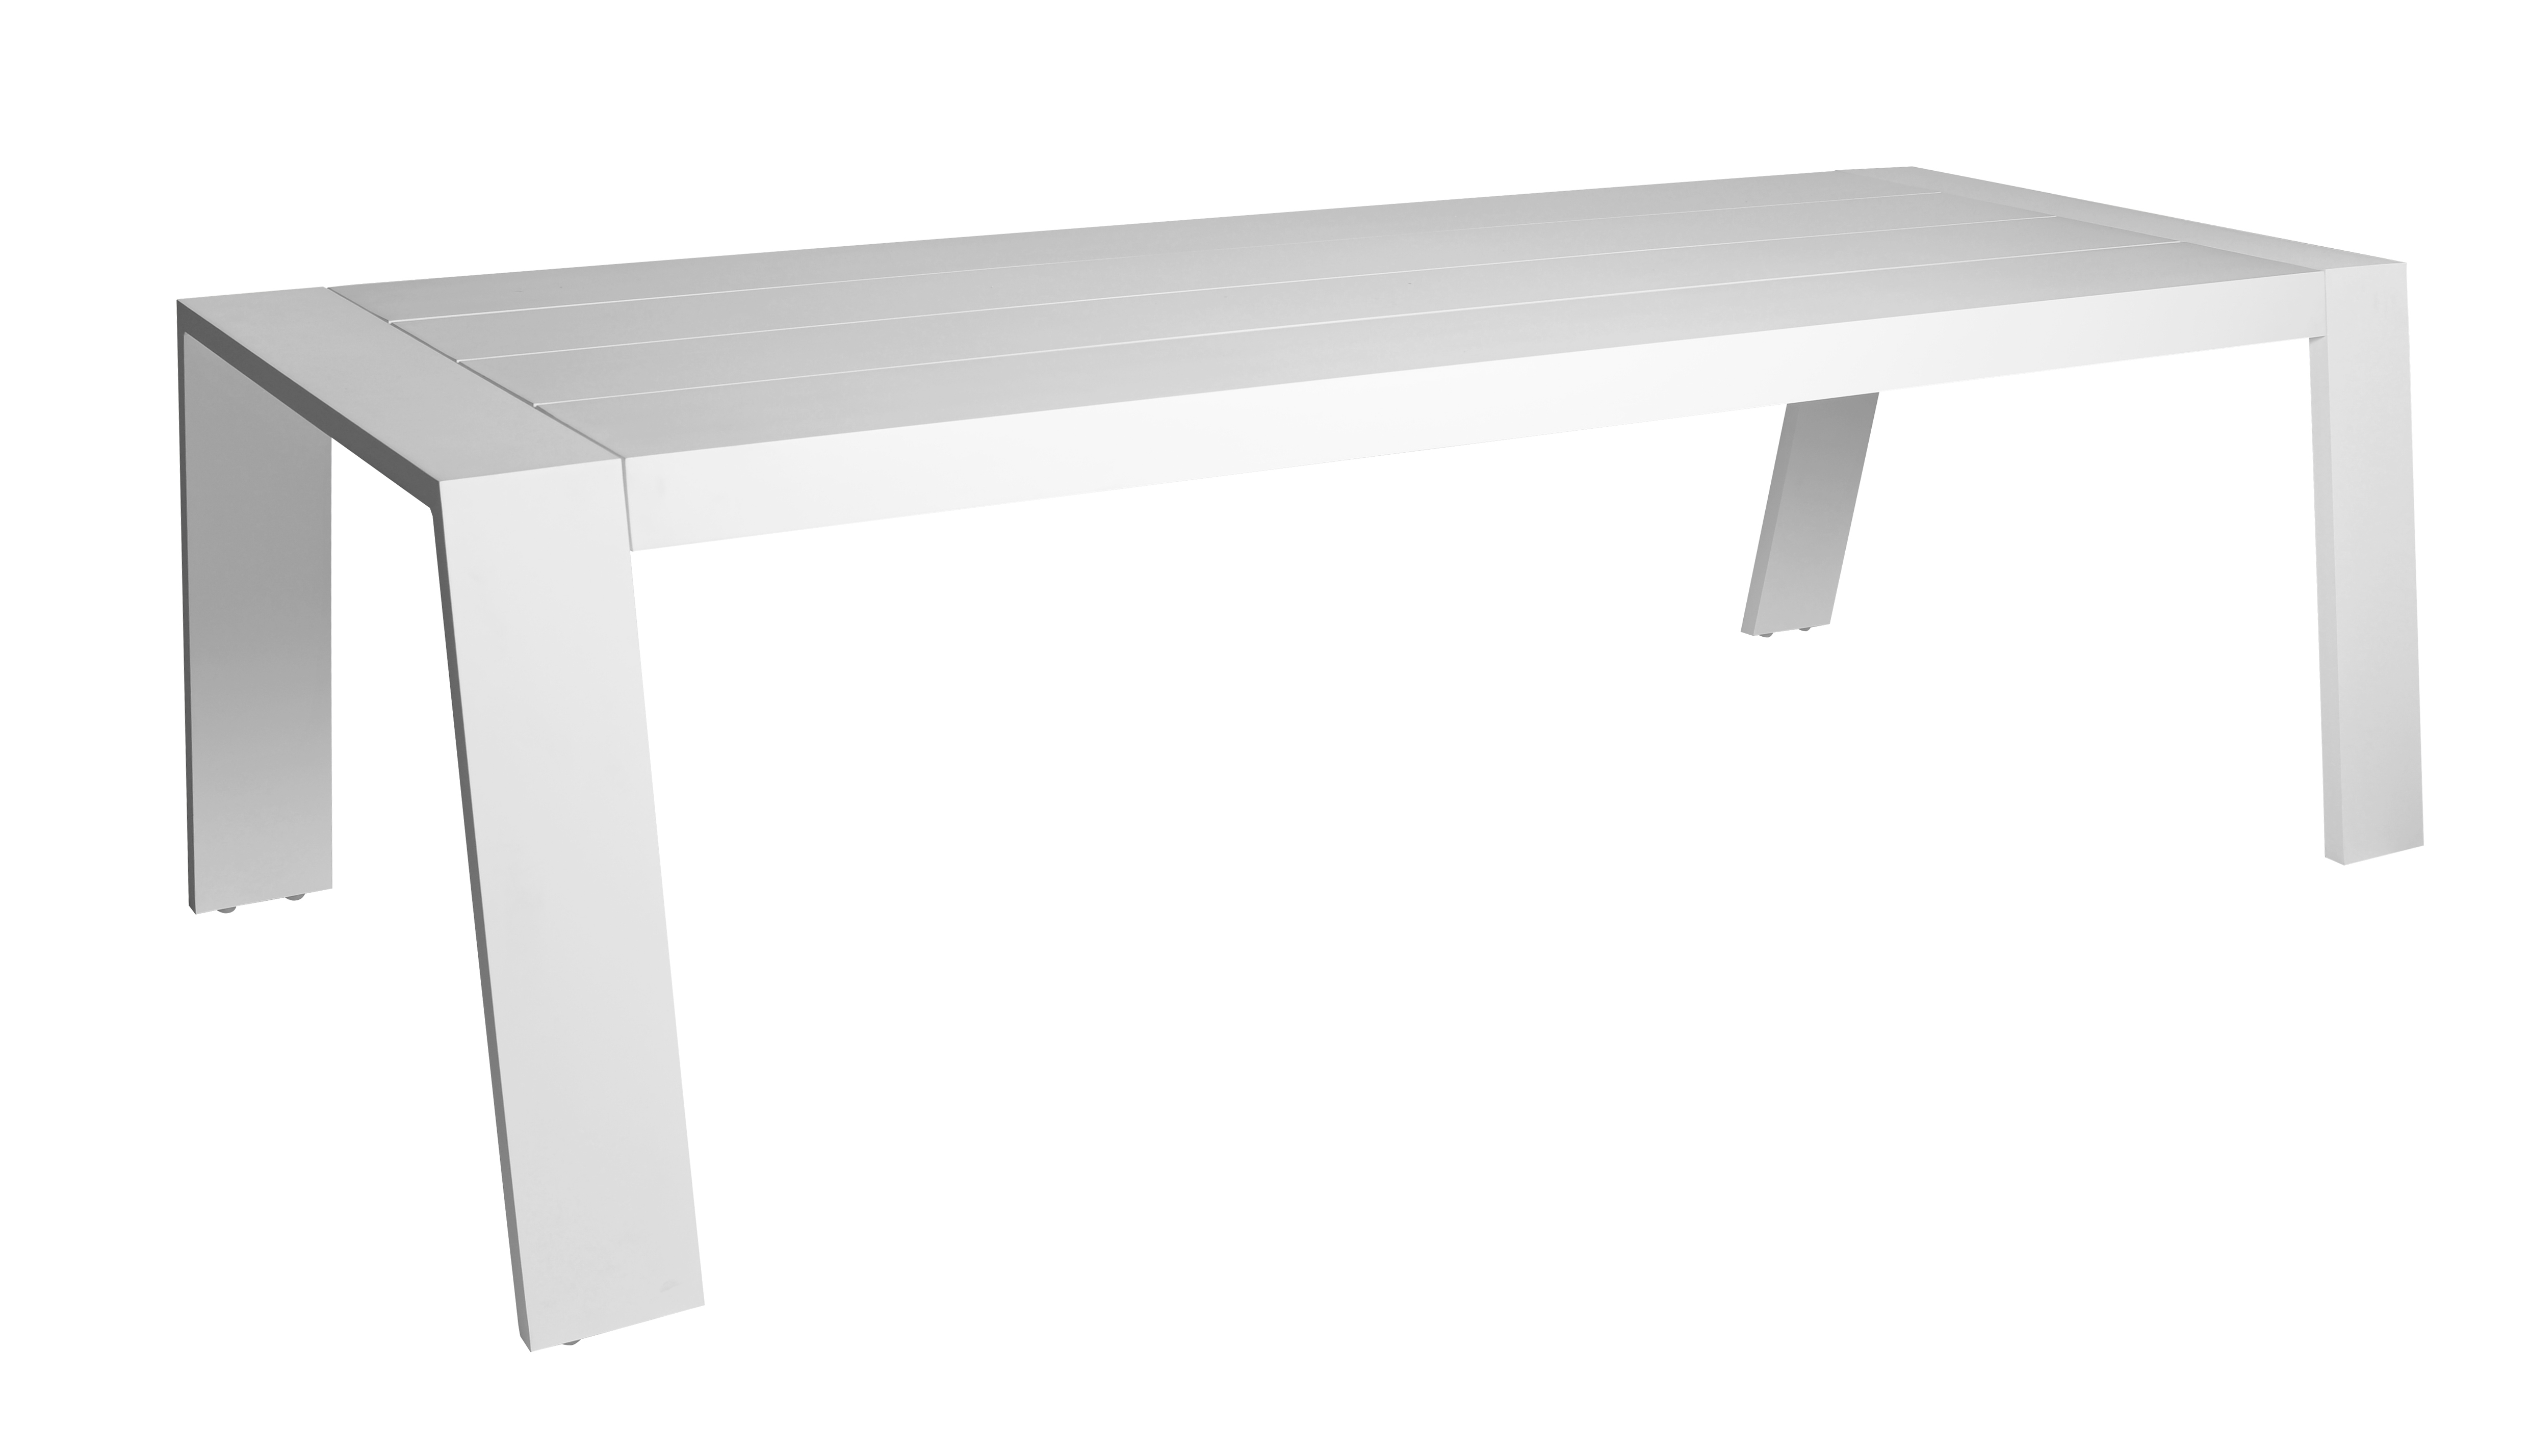 Borek aluminium Viking table 255x116cm 7146